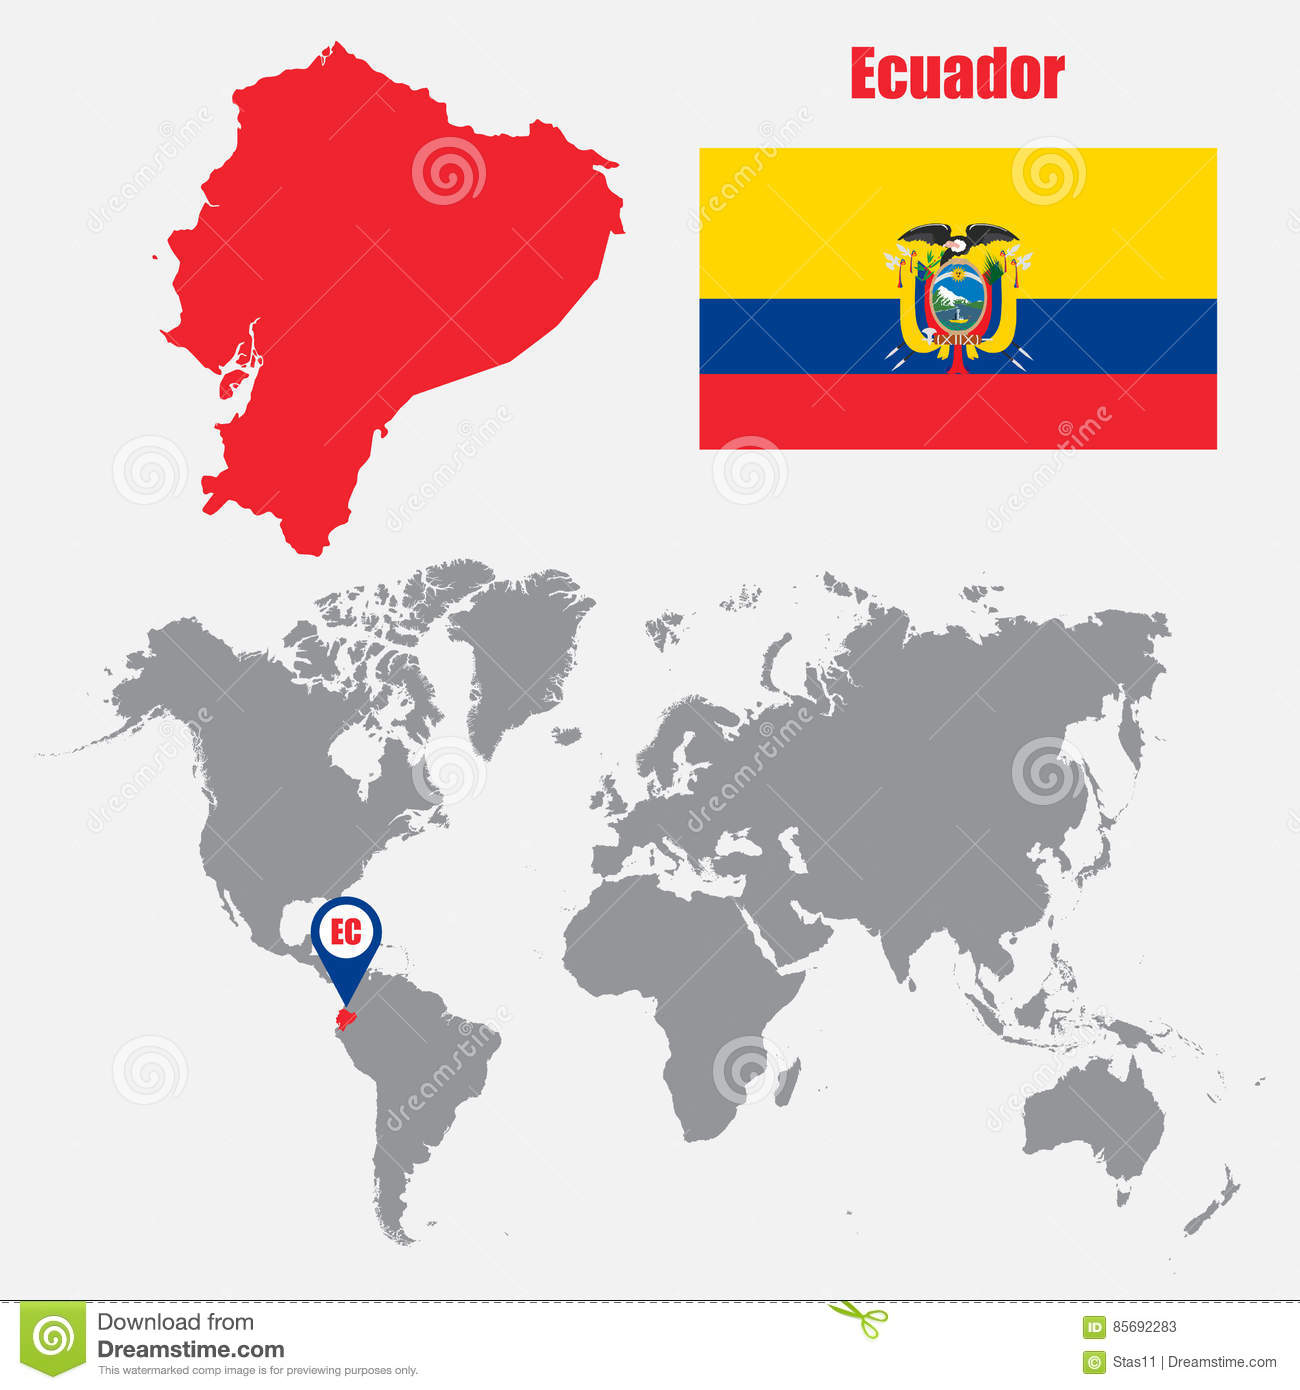 Location Of Ecuador On World Map.Ecuador Map On A World Map With Flag And Map Pointer Vector